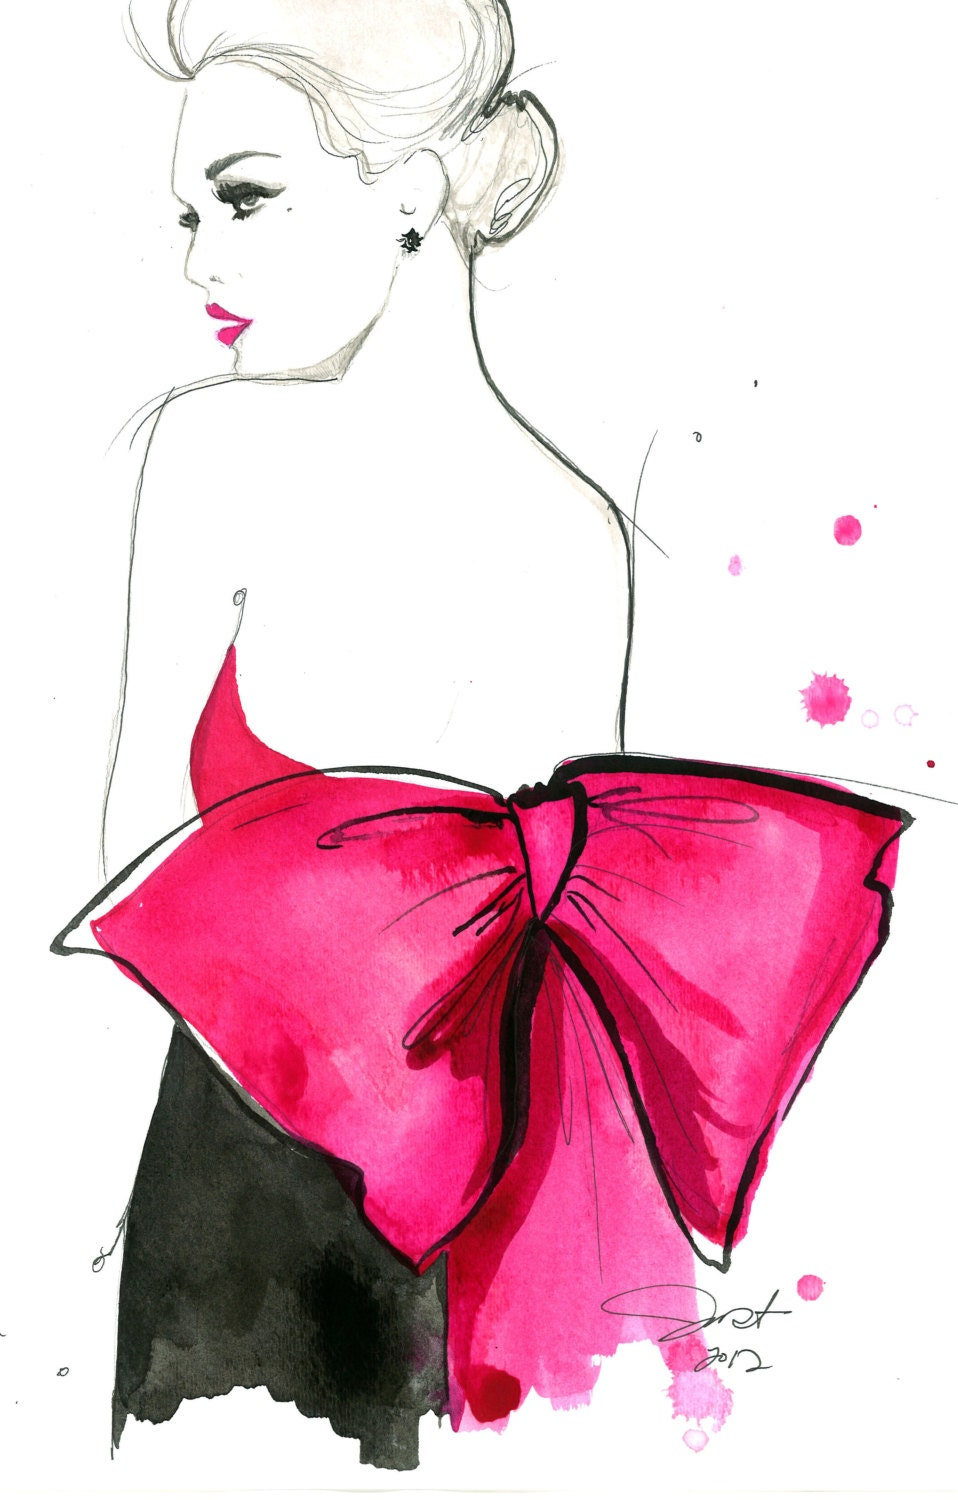 Print from original watercolor and pen fashion illustration by